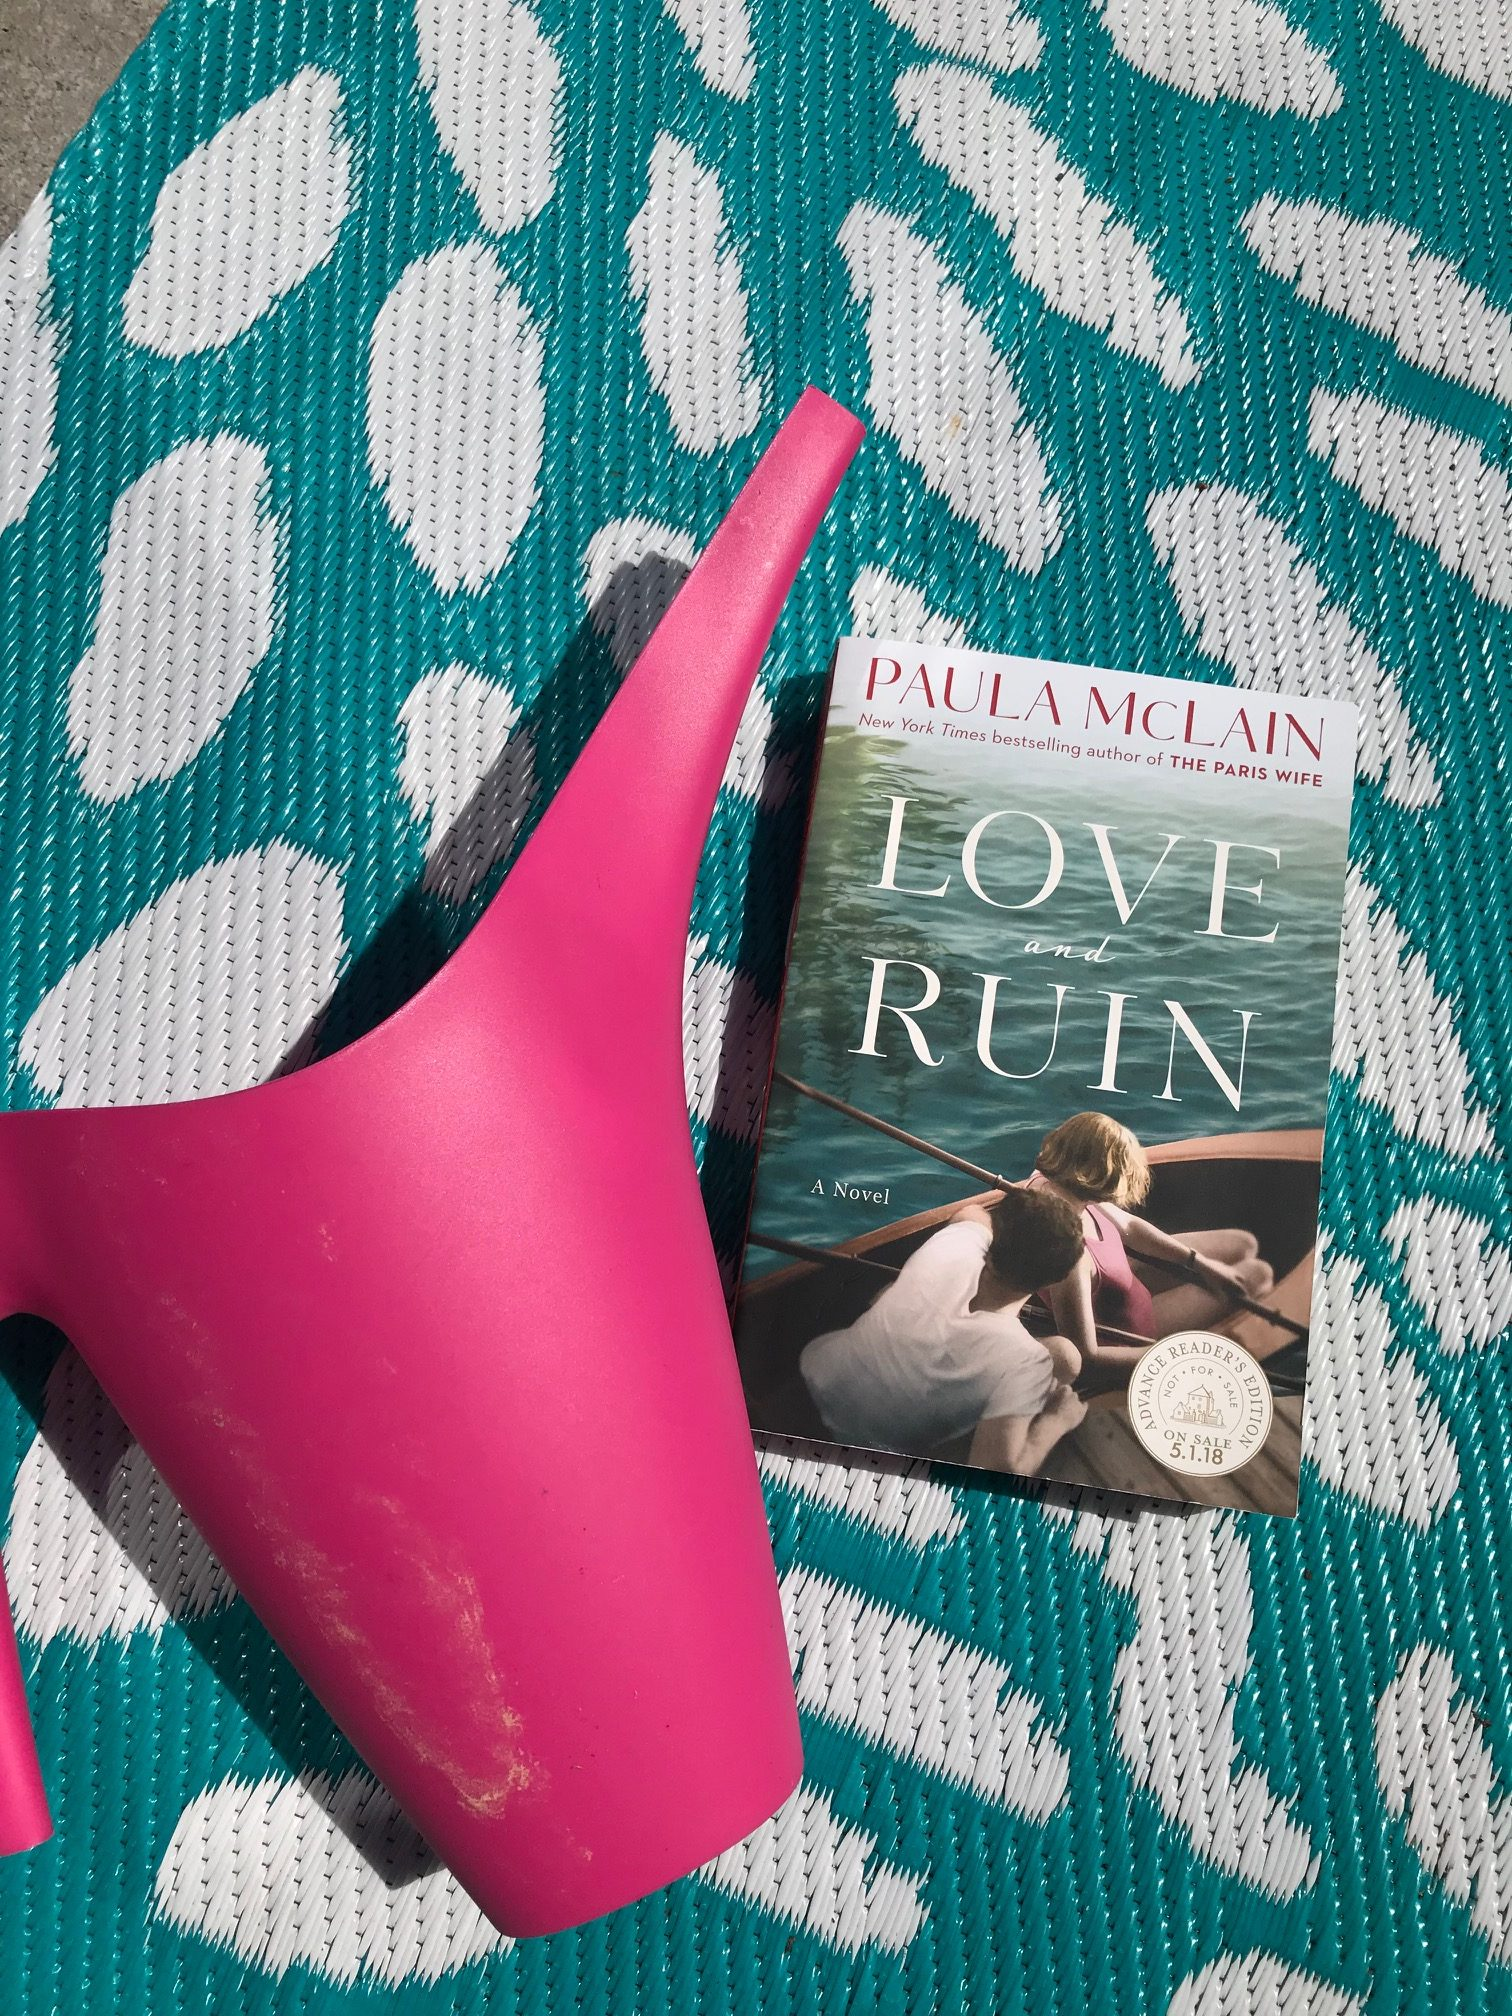 Book Review: Love and Ruin by Paula McLain